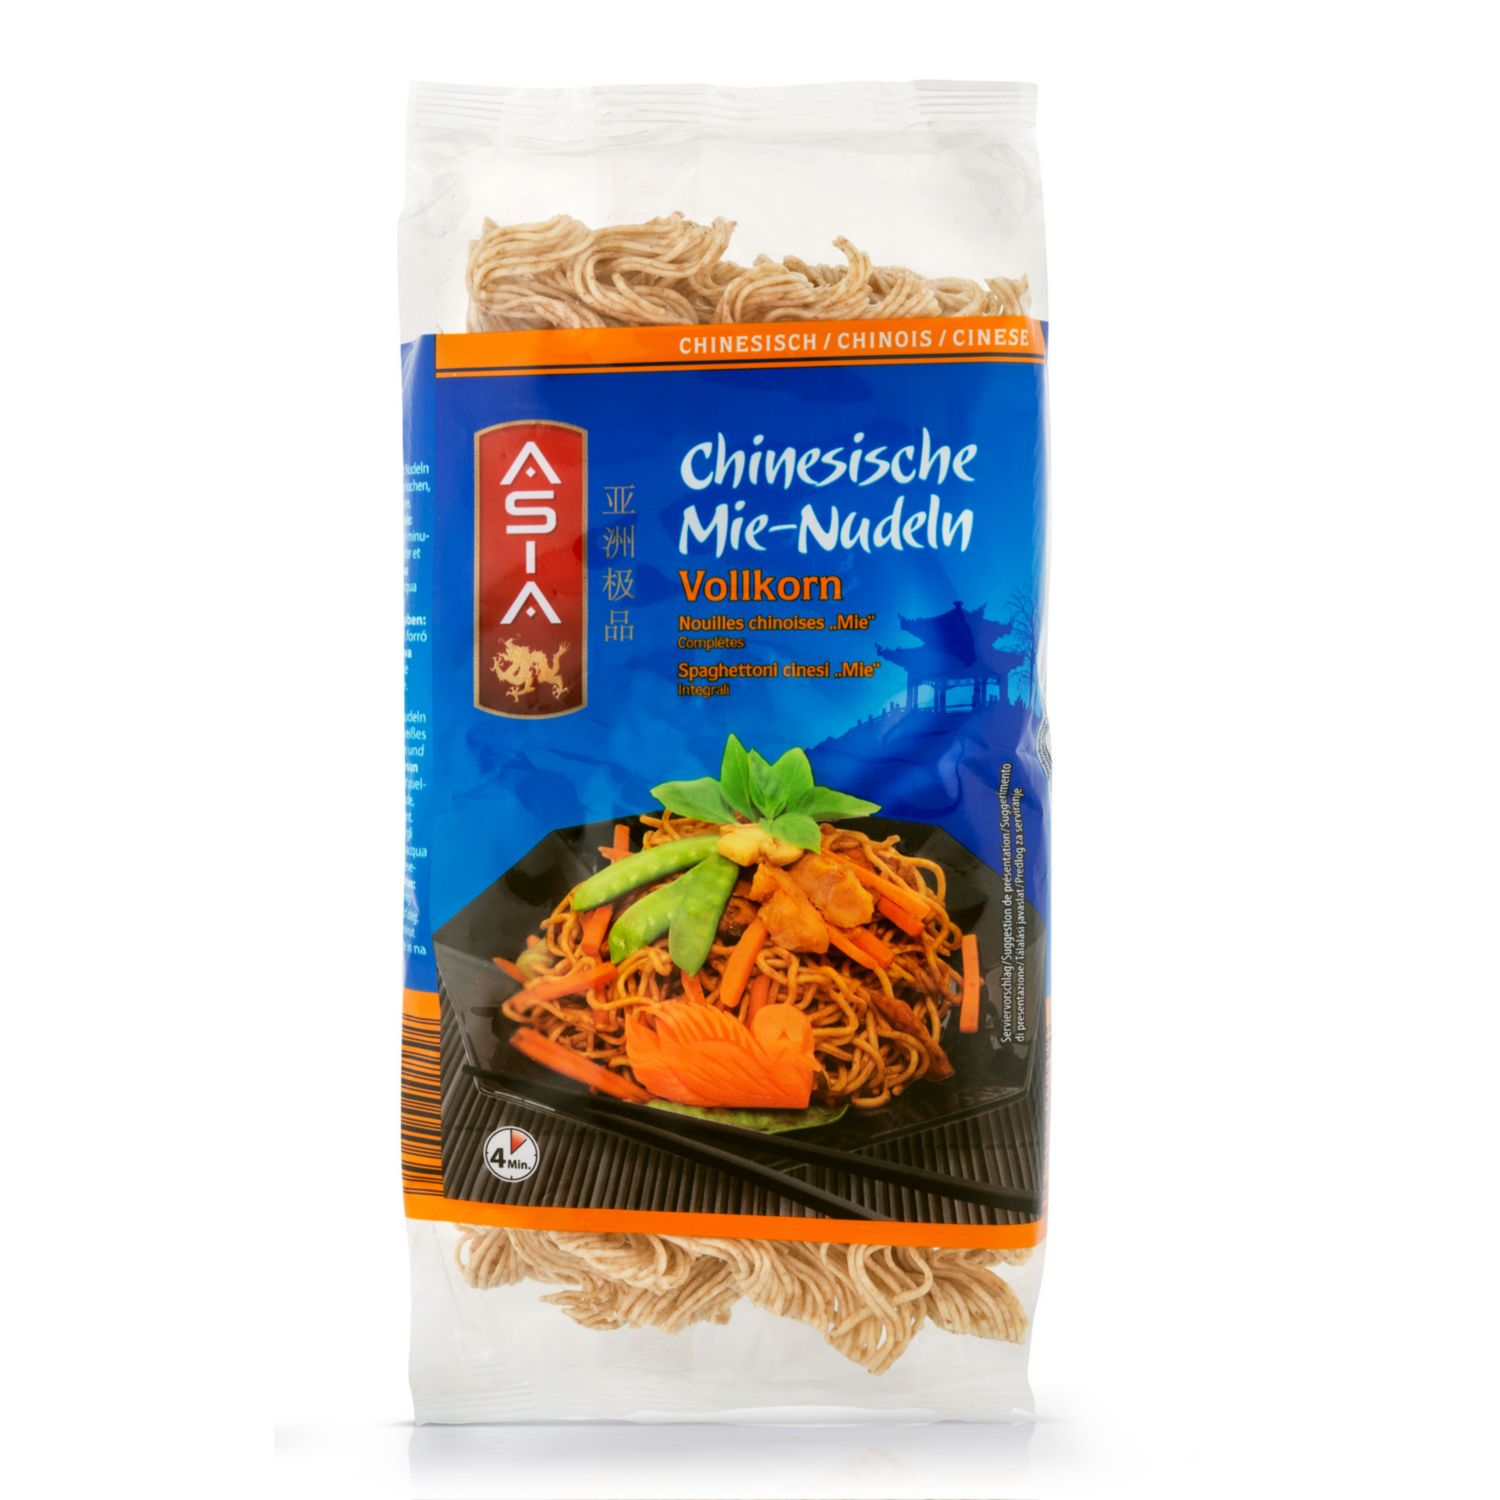 ASIA Mie-Nudeln, Vollkorn